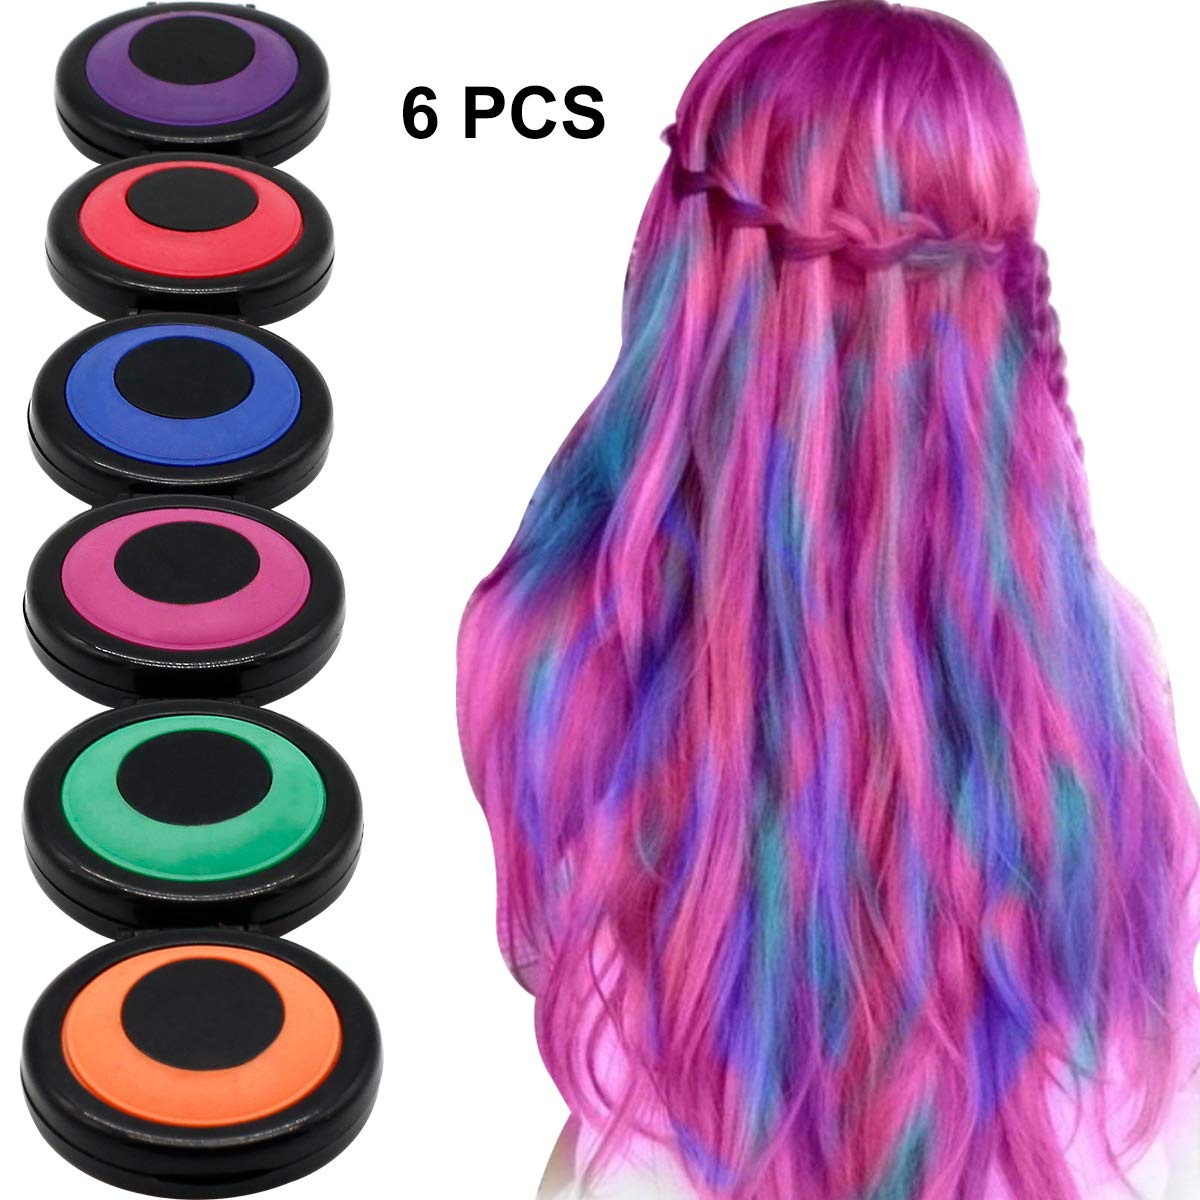 HAIR CHALKS SET: 6 Colors Temporary Hair Coloring Chalk - Hair Dye Colorful Sticks - Great For Dress Up Performance Costumes Halloween Christmas Party BUOCEANS Official